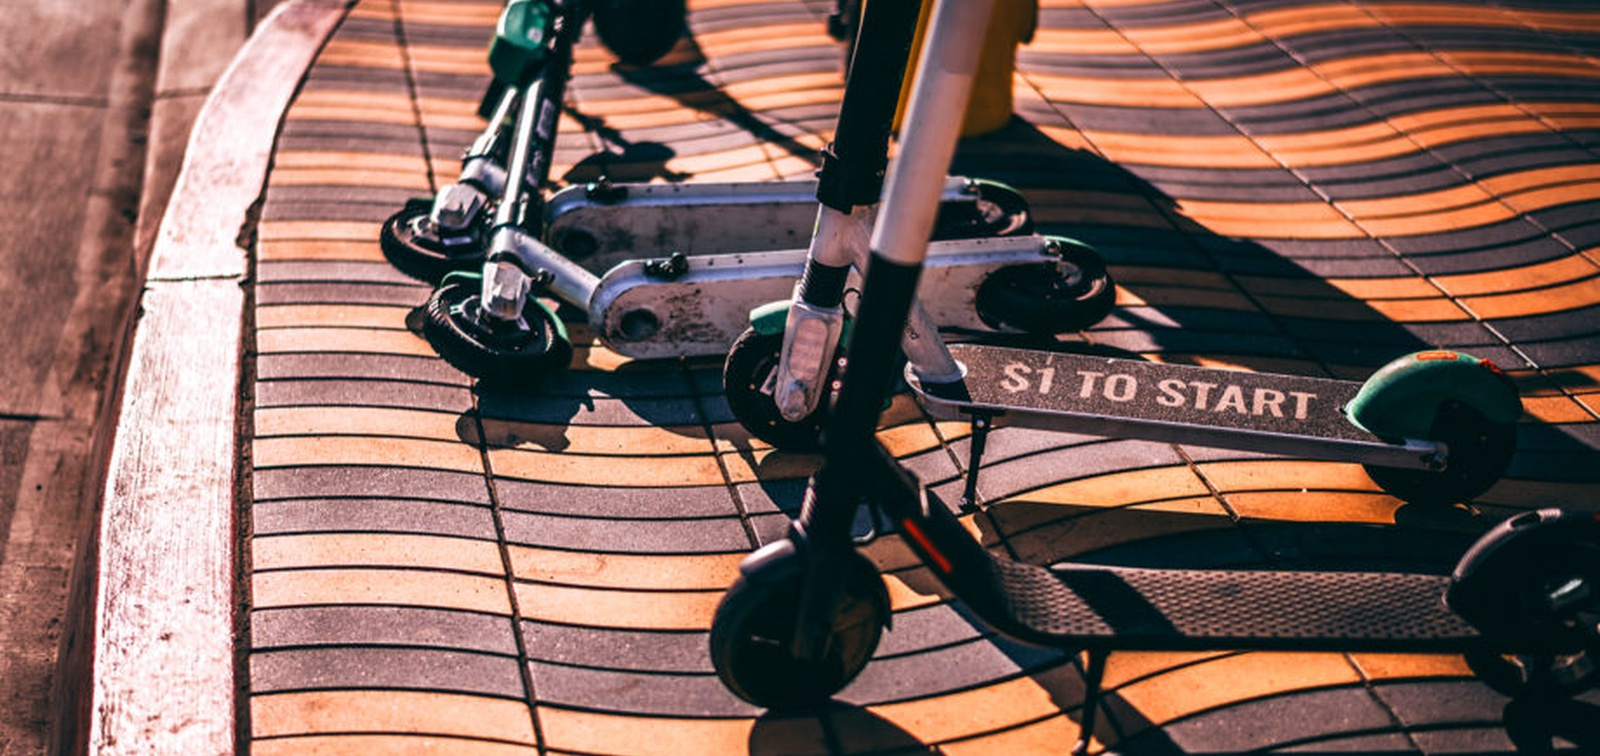 After rise of scooters, NACTO updates micromobility guidance